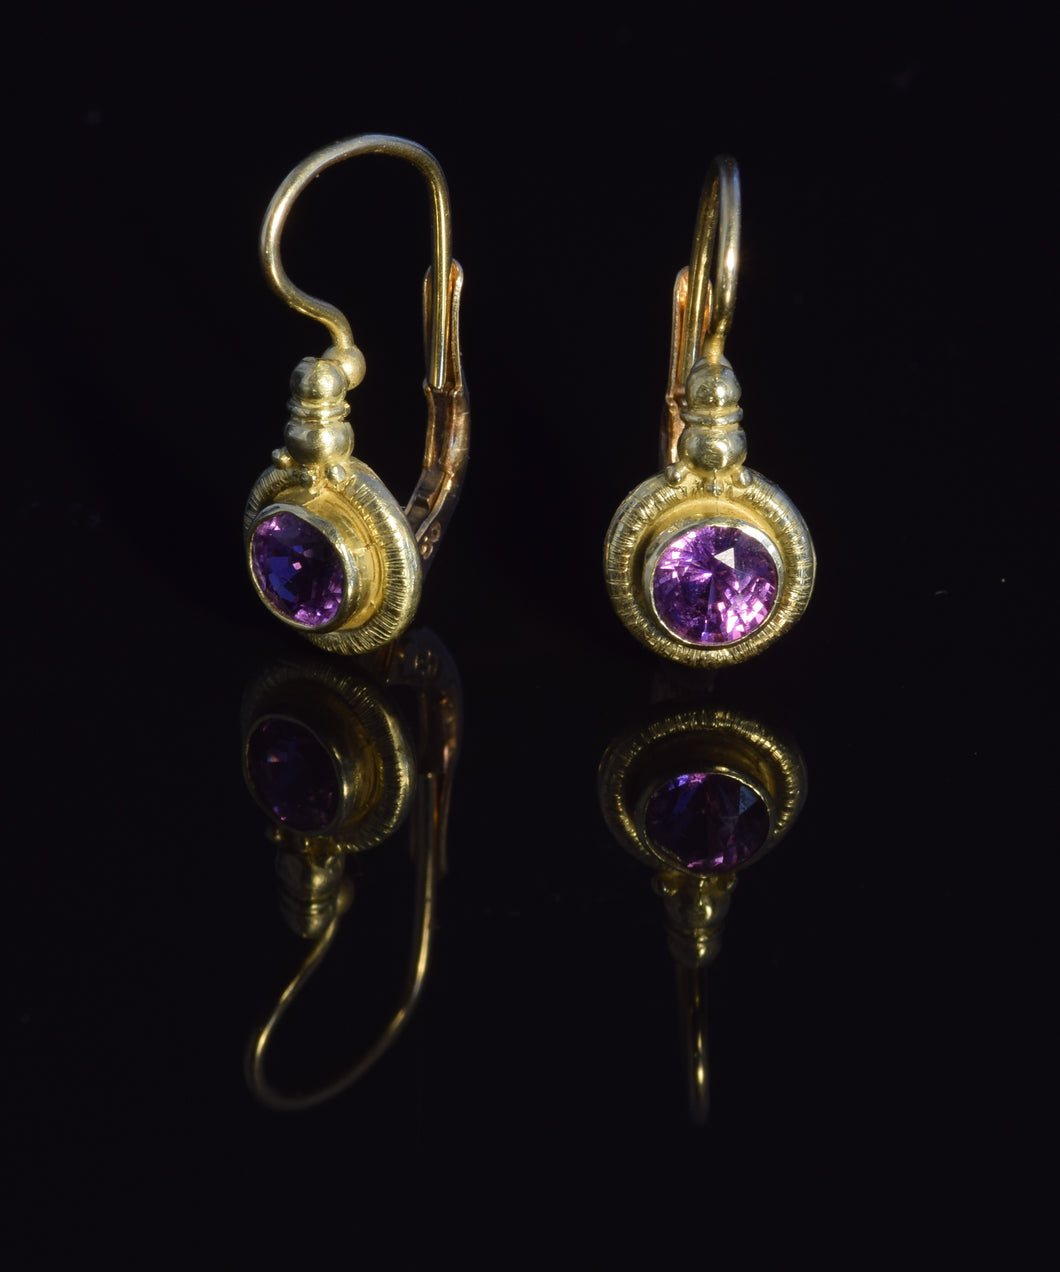 18K yellow gold 4 1/2 mm faceted purple sapphire French hook earrings